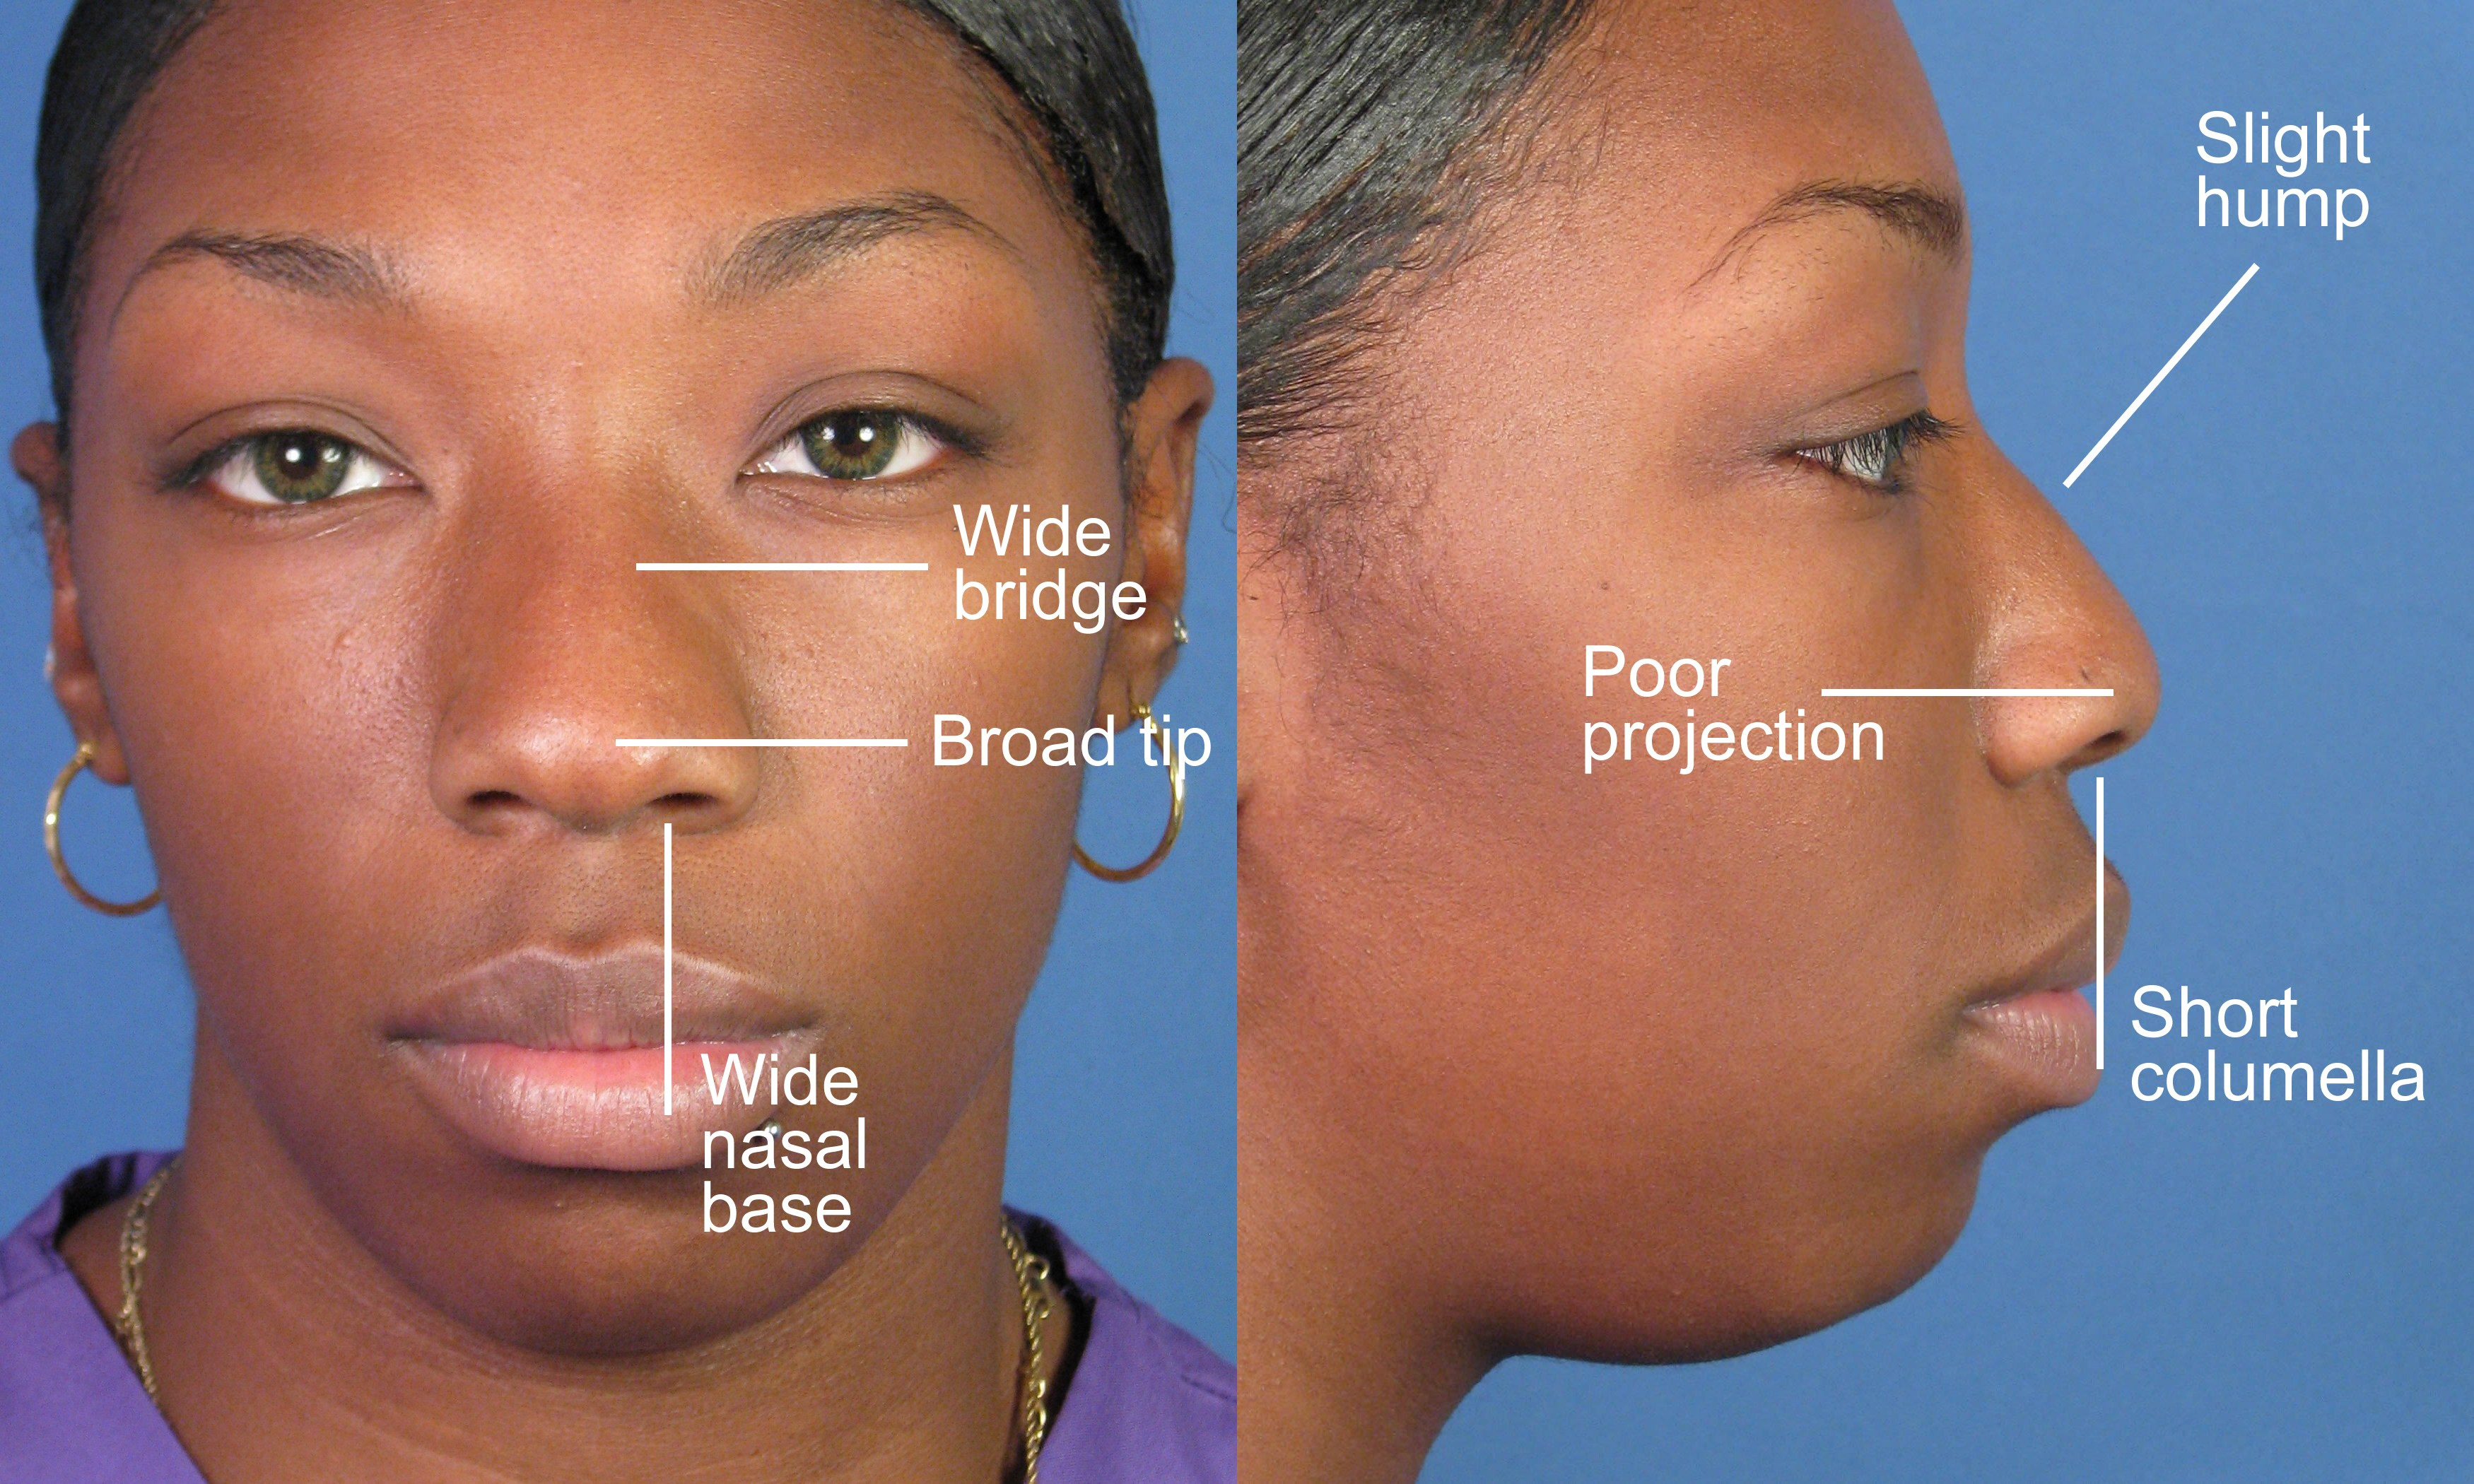 African rhinoplasty in Iran